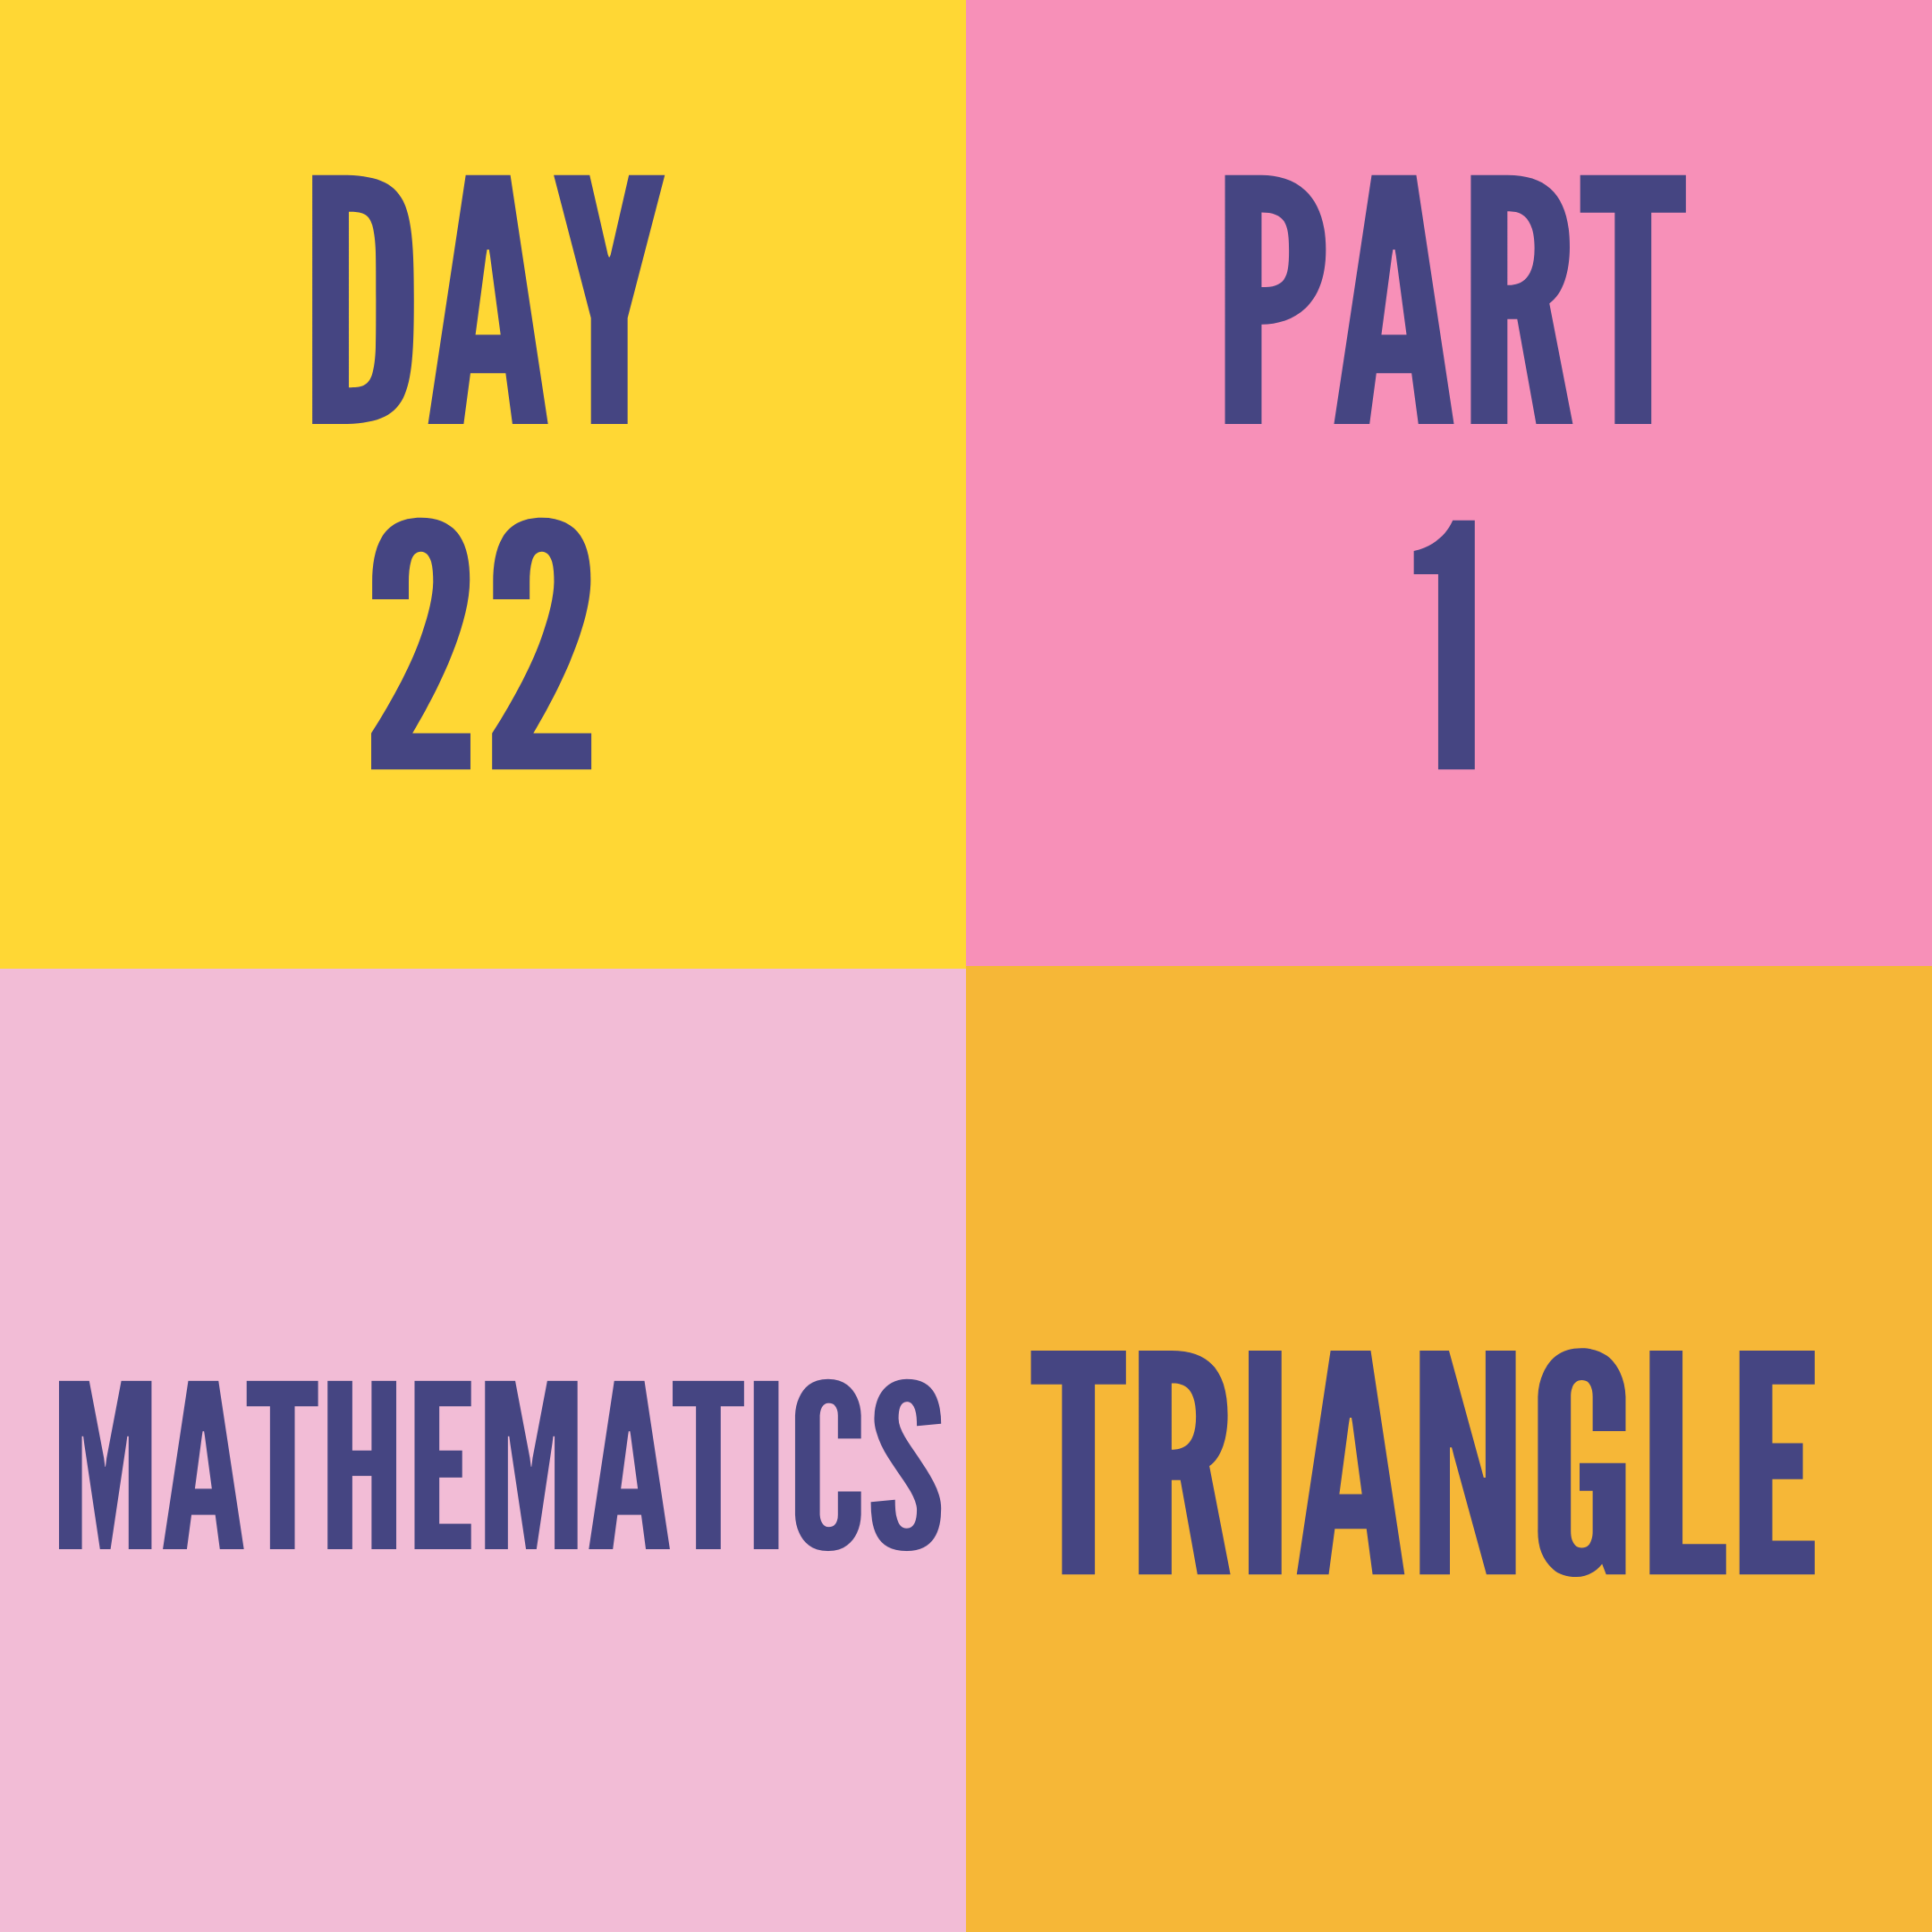 DAY-22 PART-1 TRIANGLE